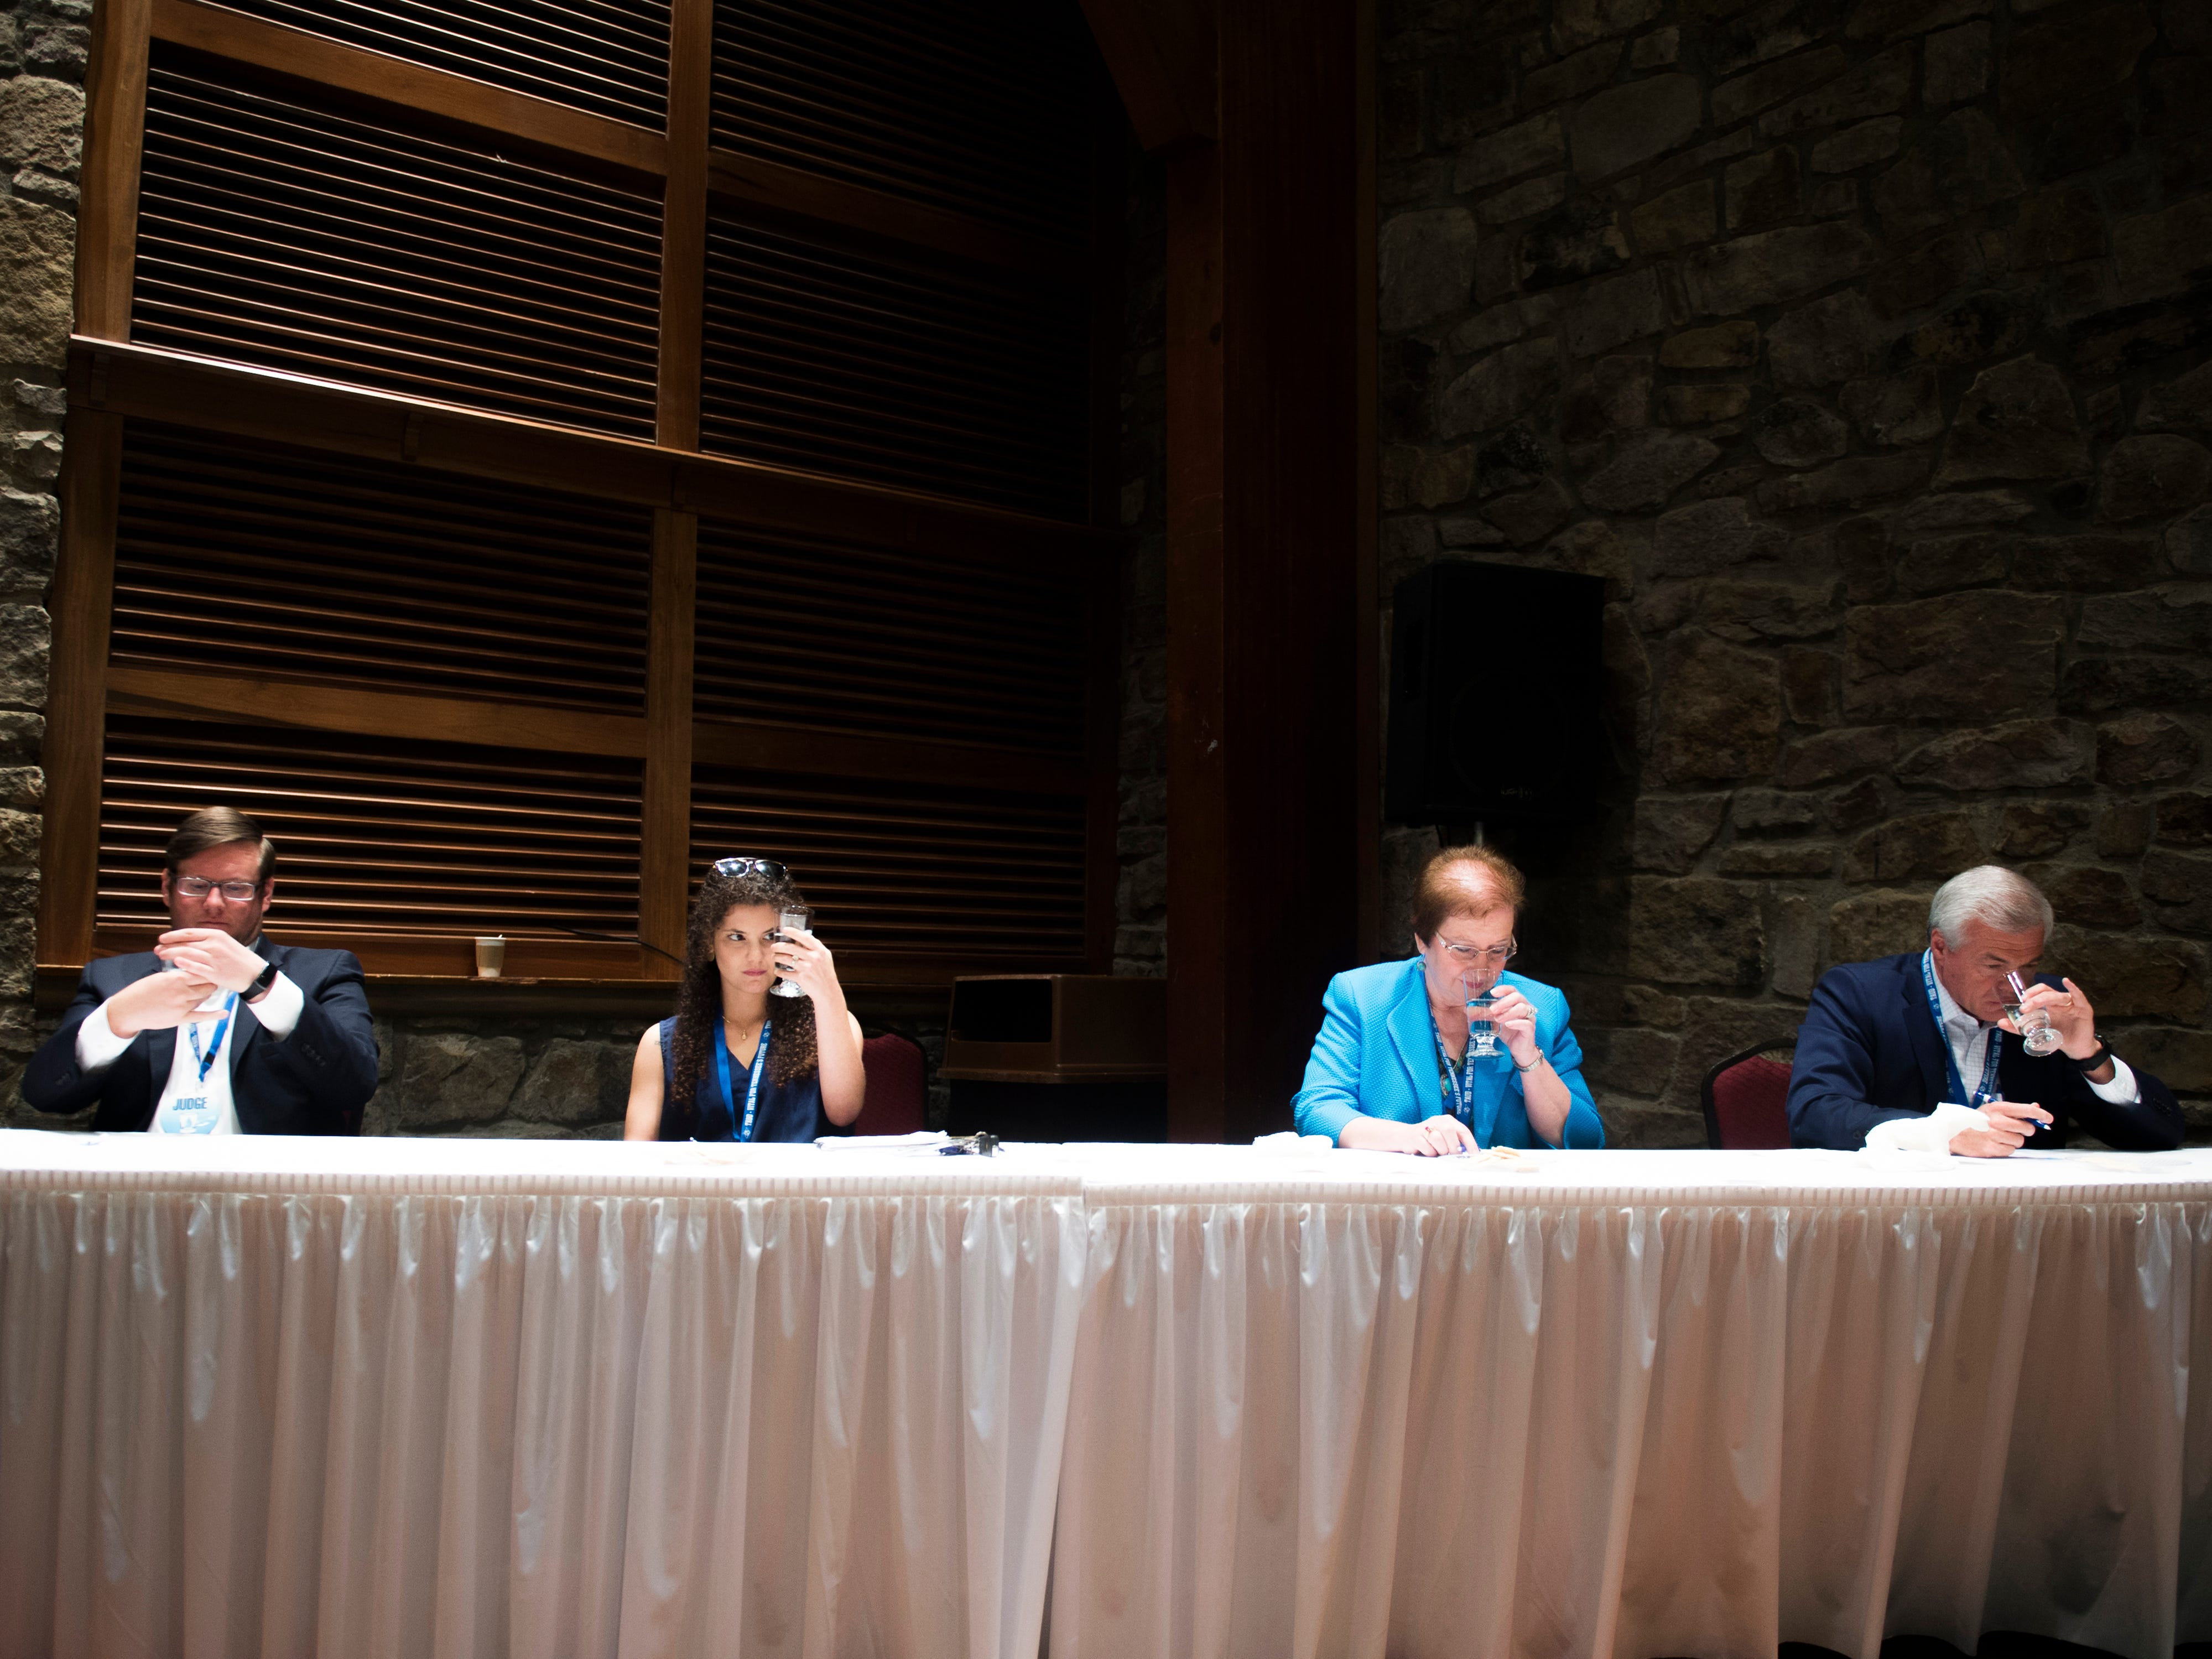 Four judges, including the News Sentinel's Brittany Crocker, judged tap water from across the state at Tennessee's Best Tasting Water Contest held on Thursday, August 9, 2018, during the Tennessee Association of Utility Districts' business conference held at the Gatlinburg Convention Center.